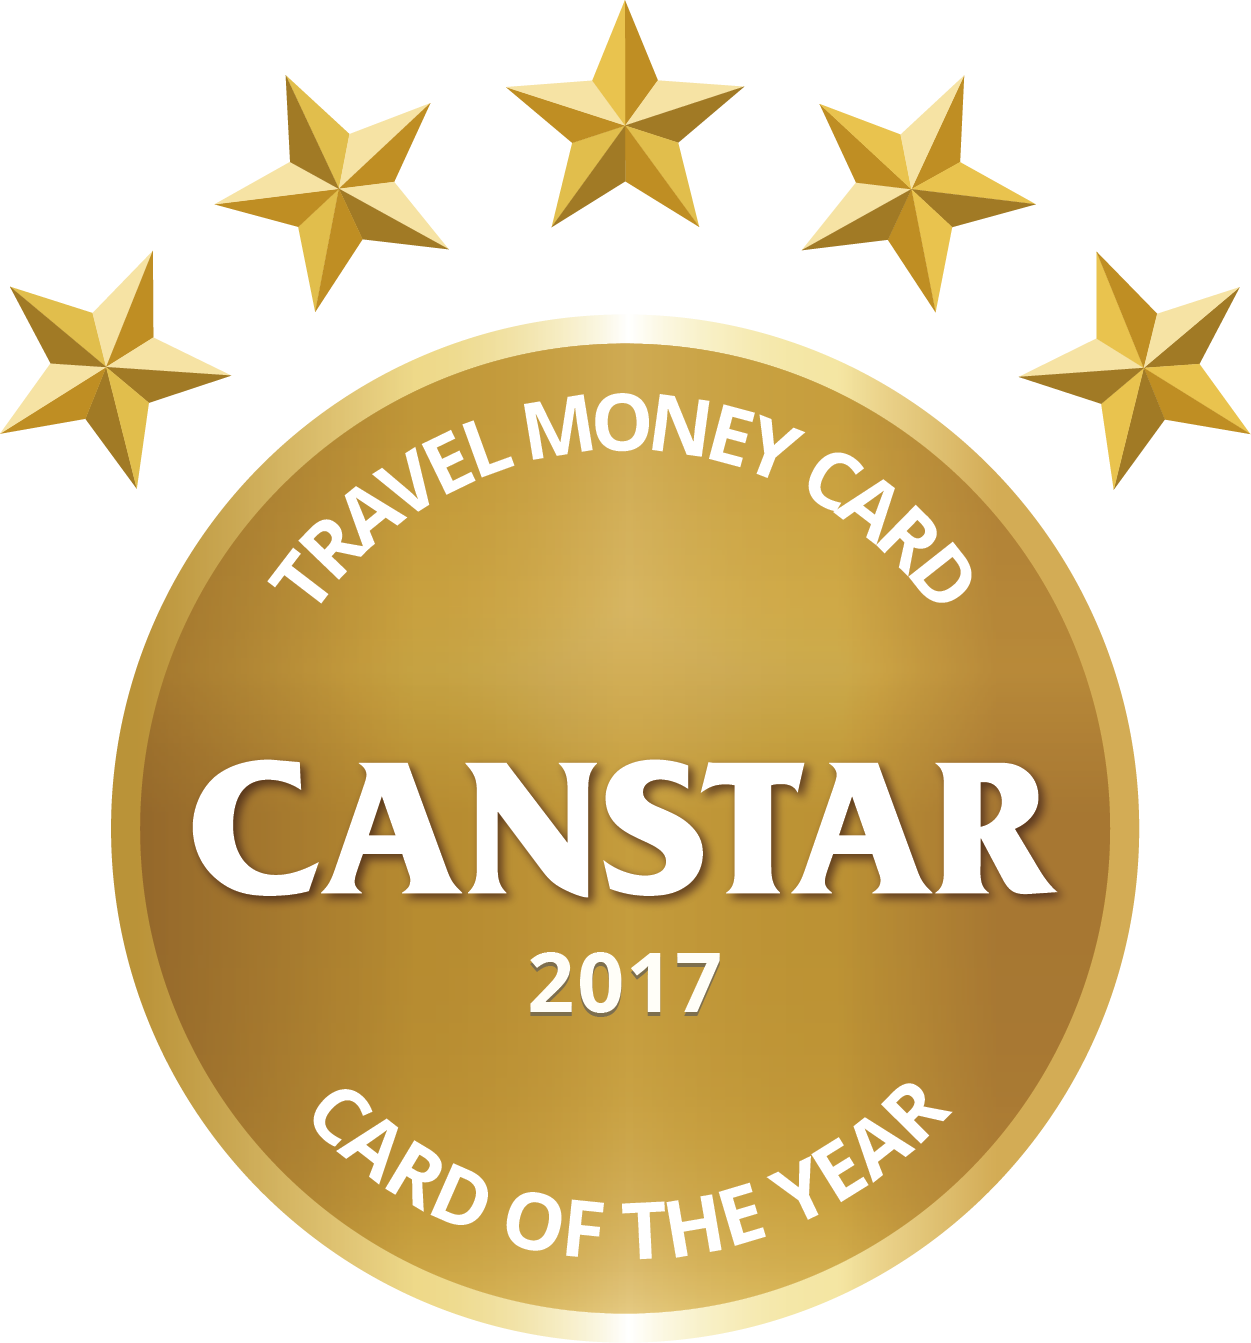 Travel Money Card Award of the year